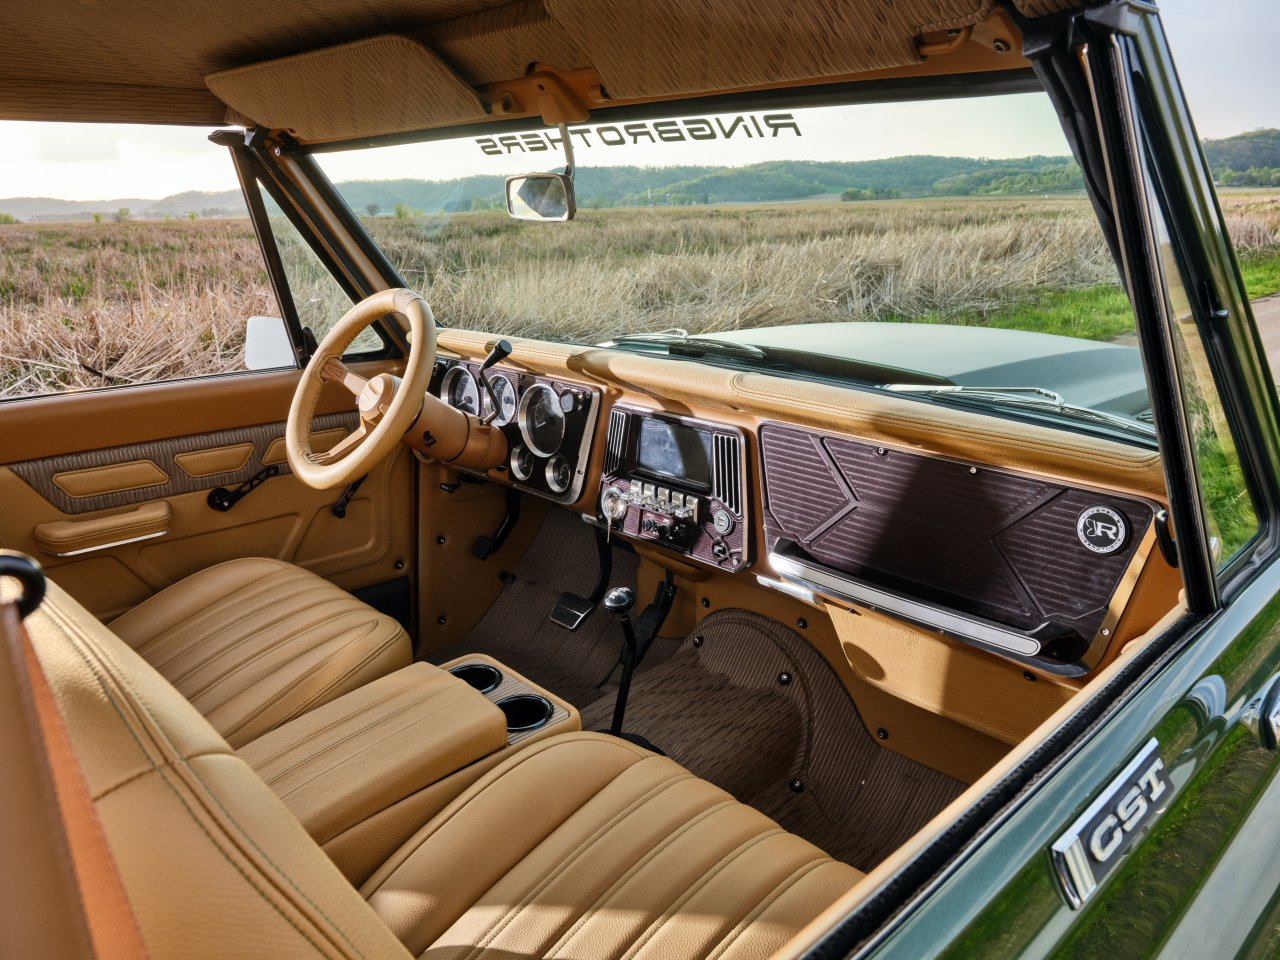 Ringbrothers, Ringbrothers-built 1970 Chevy Blazer is sweepstakes prize, ClassicCars.com Journal